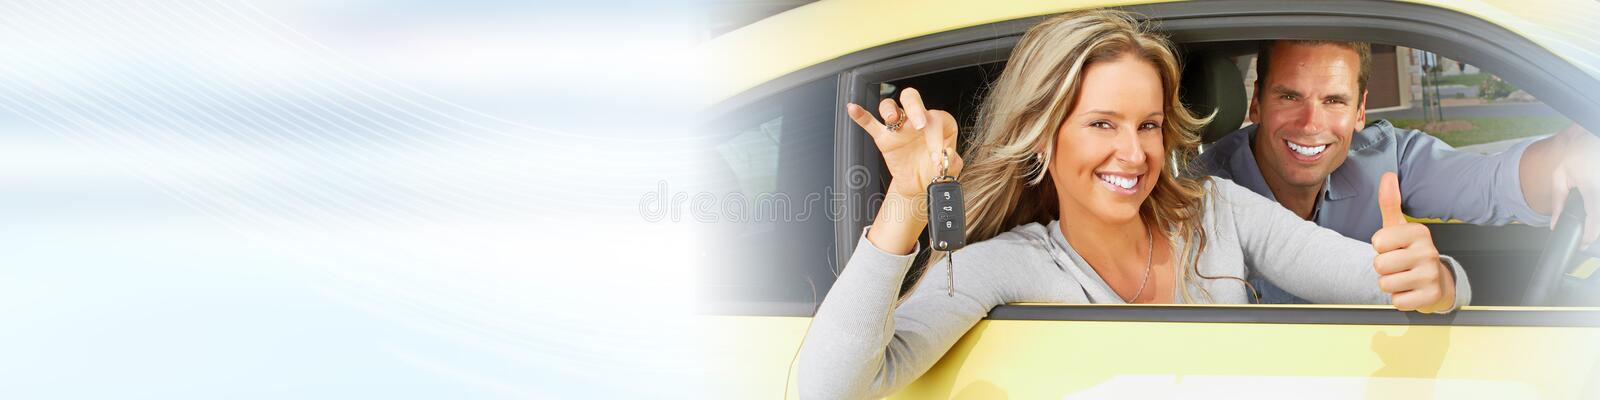 Driver woman royalty free stock photography